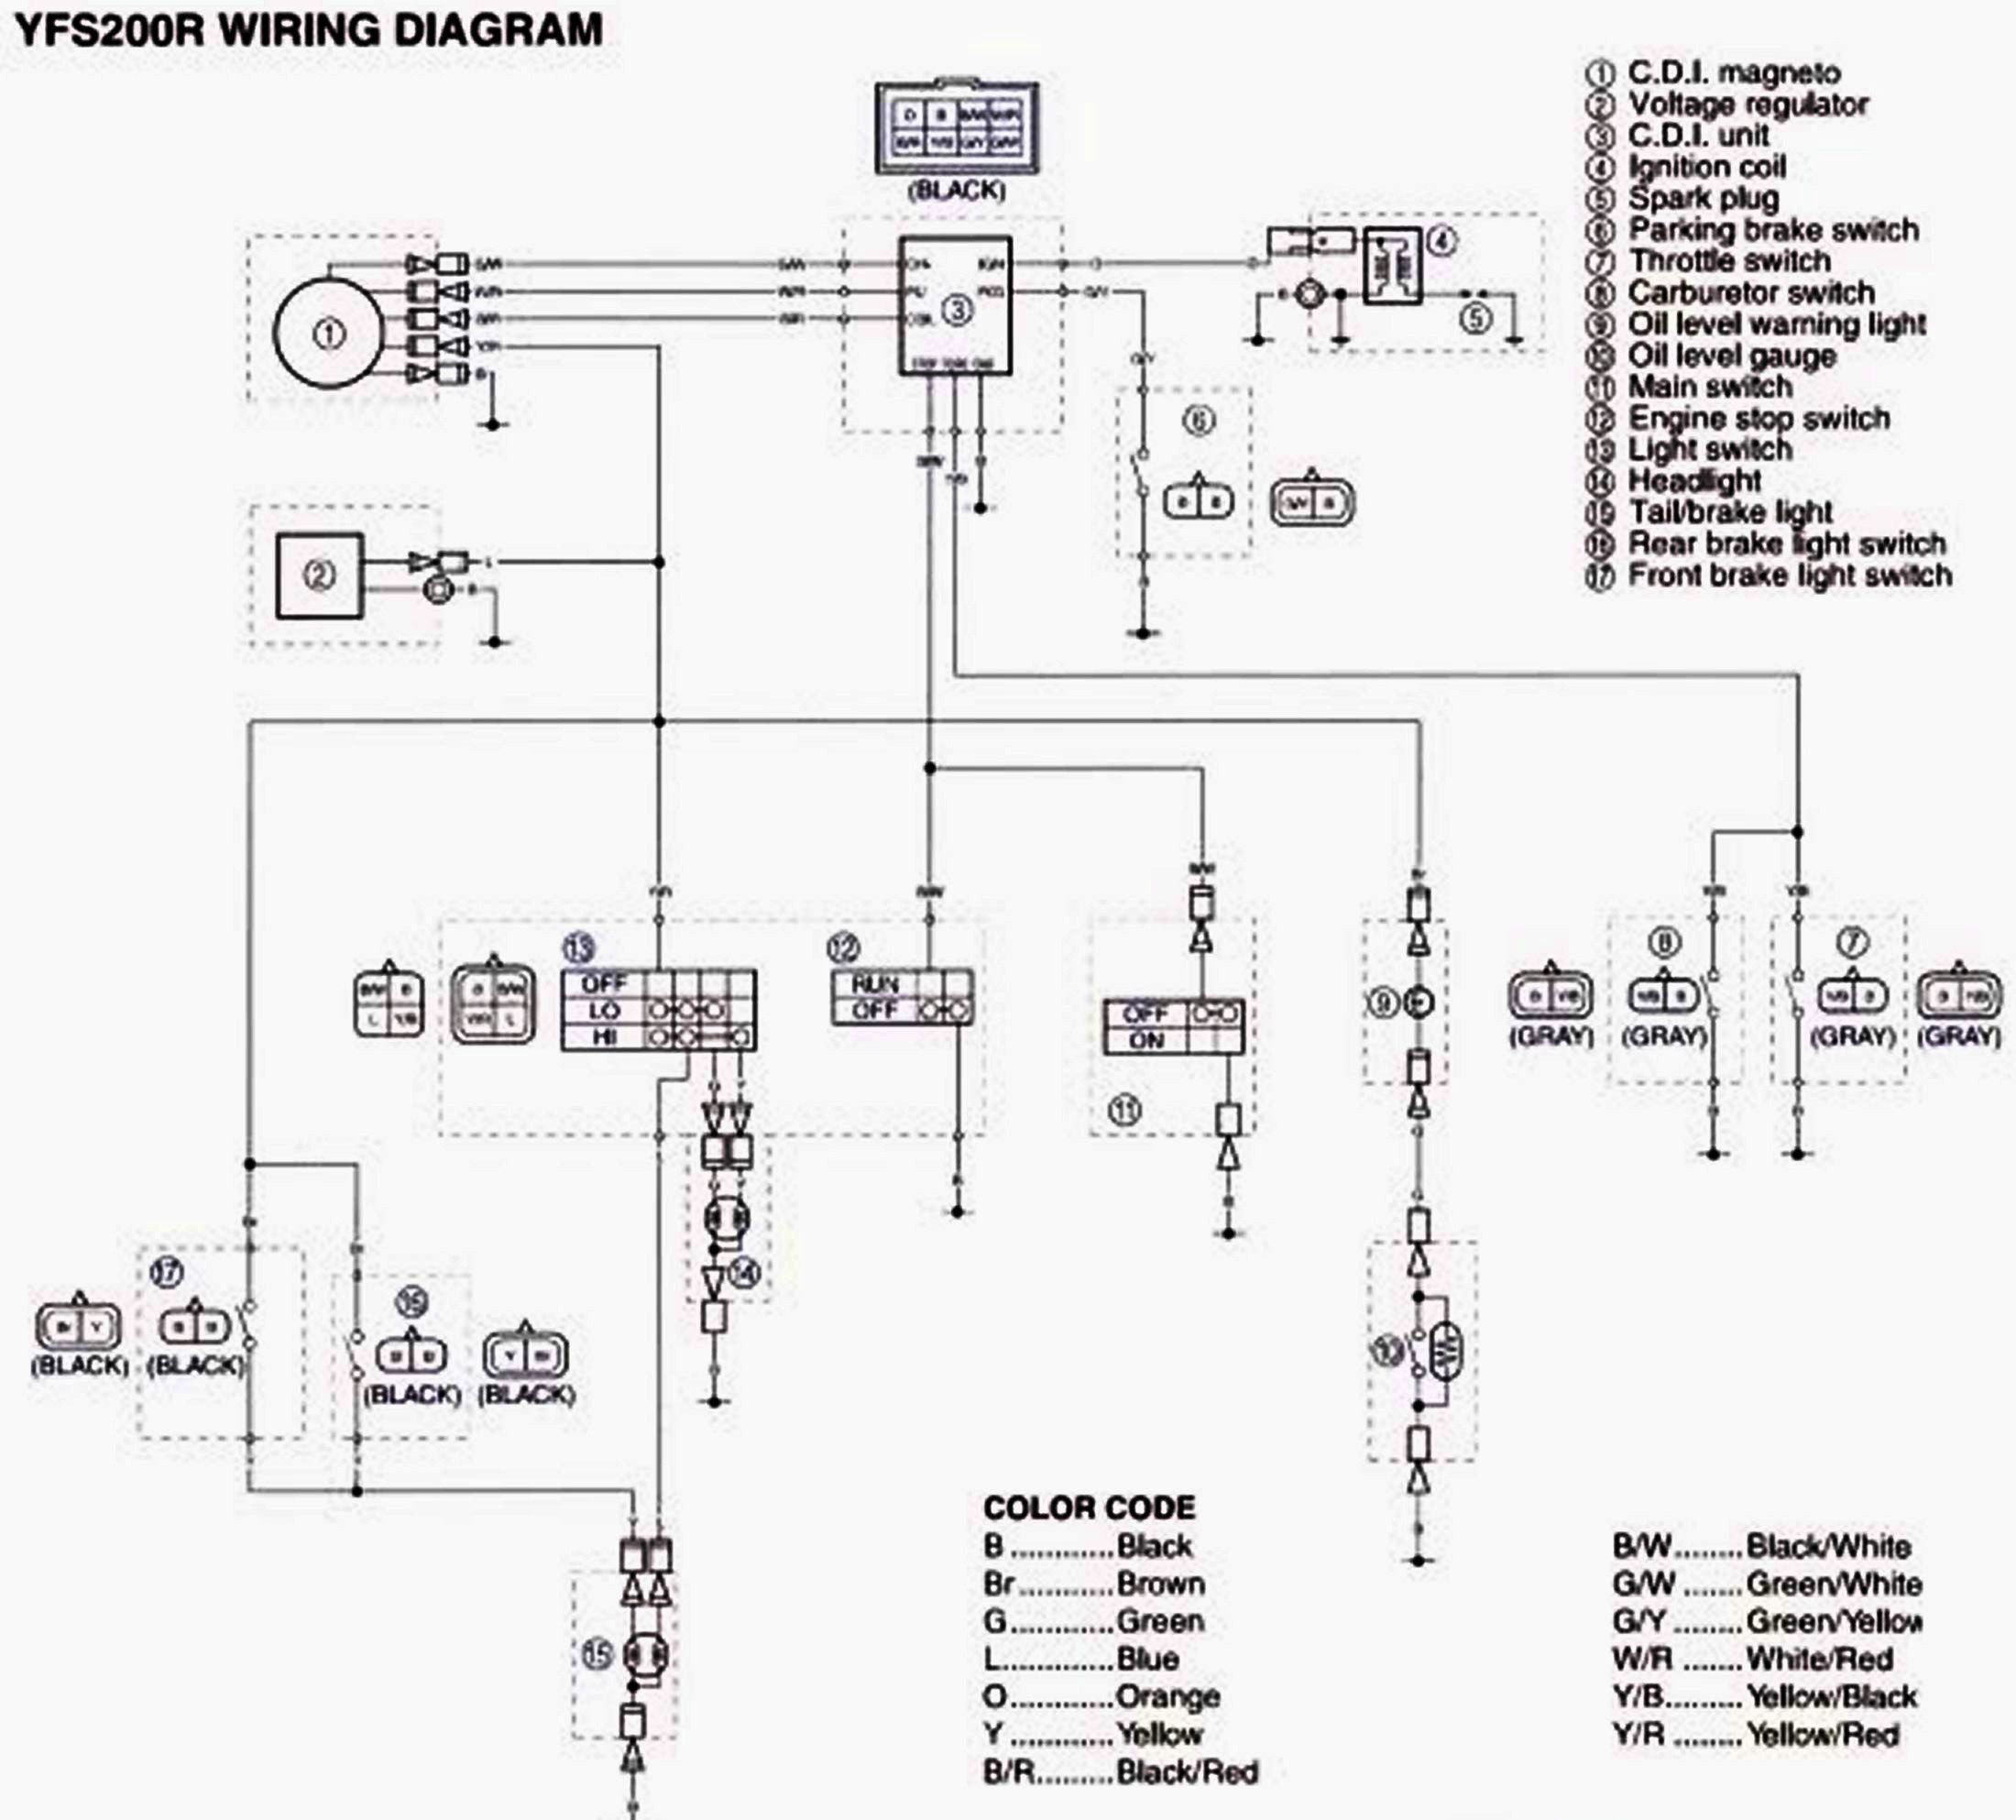 2002 Yamaha Blaster Wiring Diagram Opinions About Viper Stock Diagrams Blasterforum Com Rh 1996 Manual 200